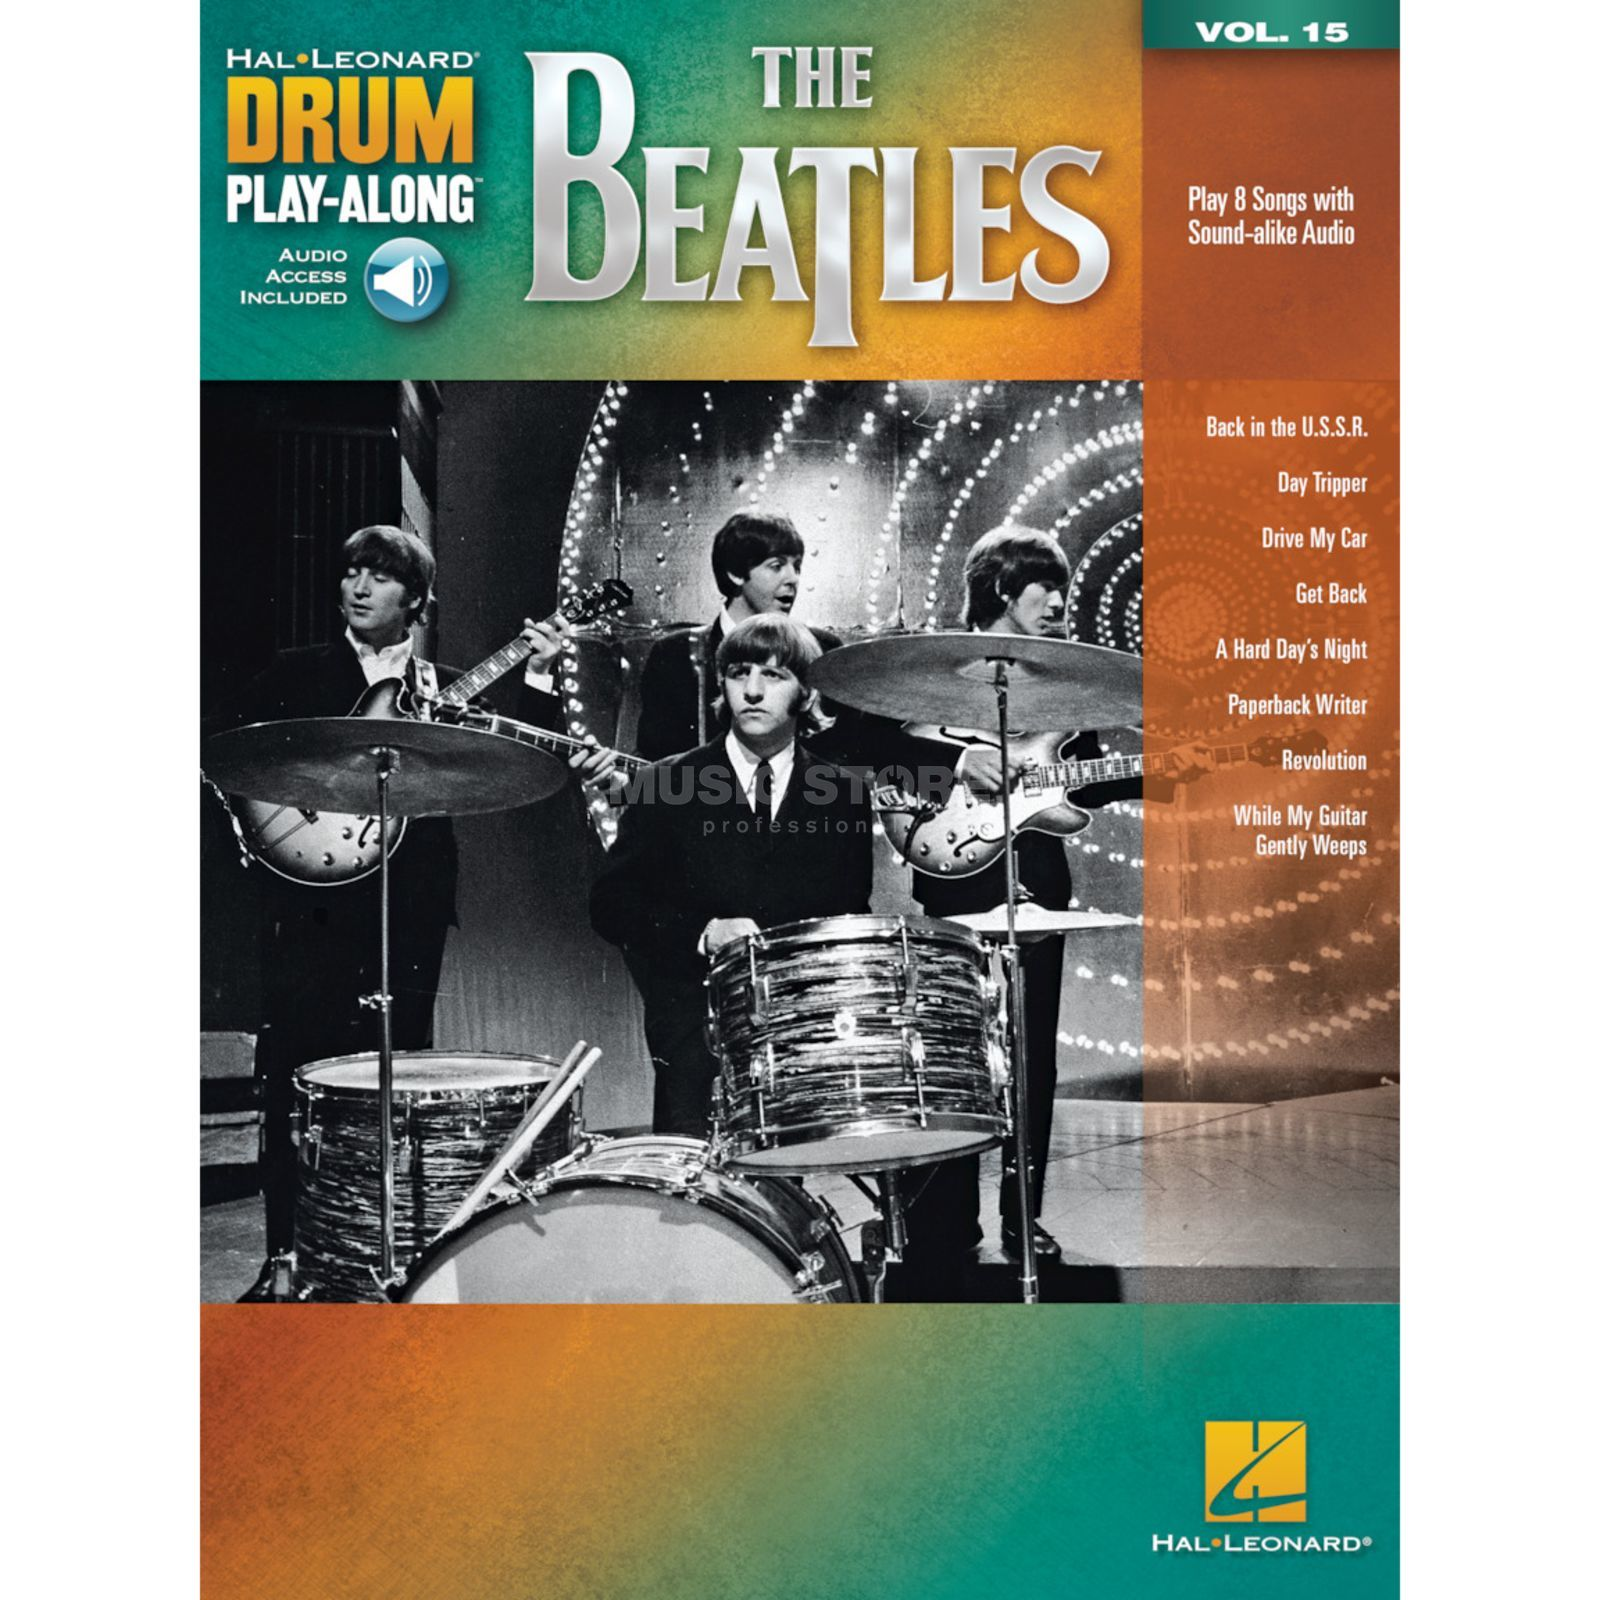 Hal Leonard Drum Play-Along Volume 15: The Beatles Εικόνα προιόντος